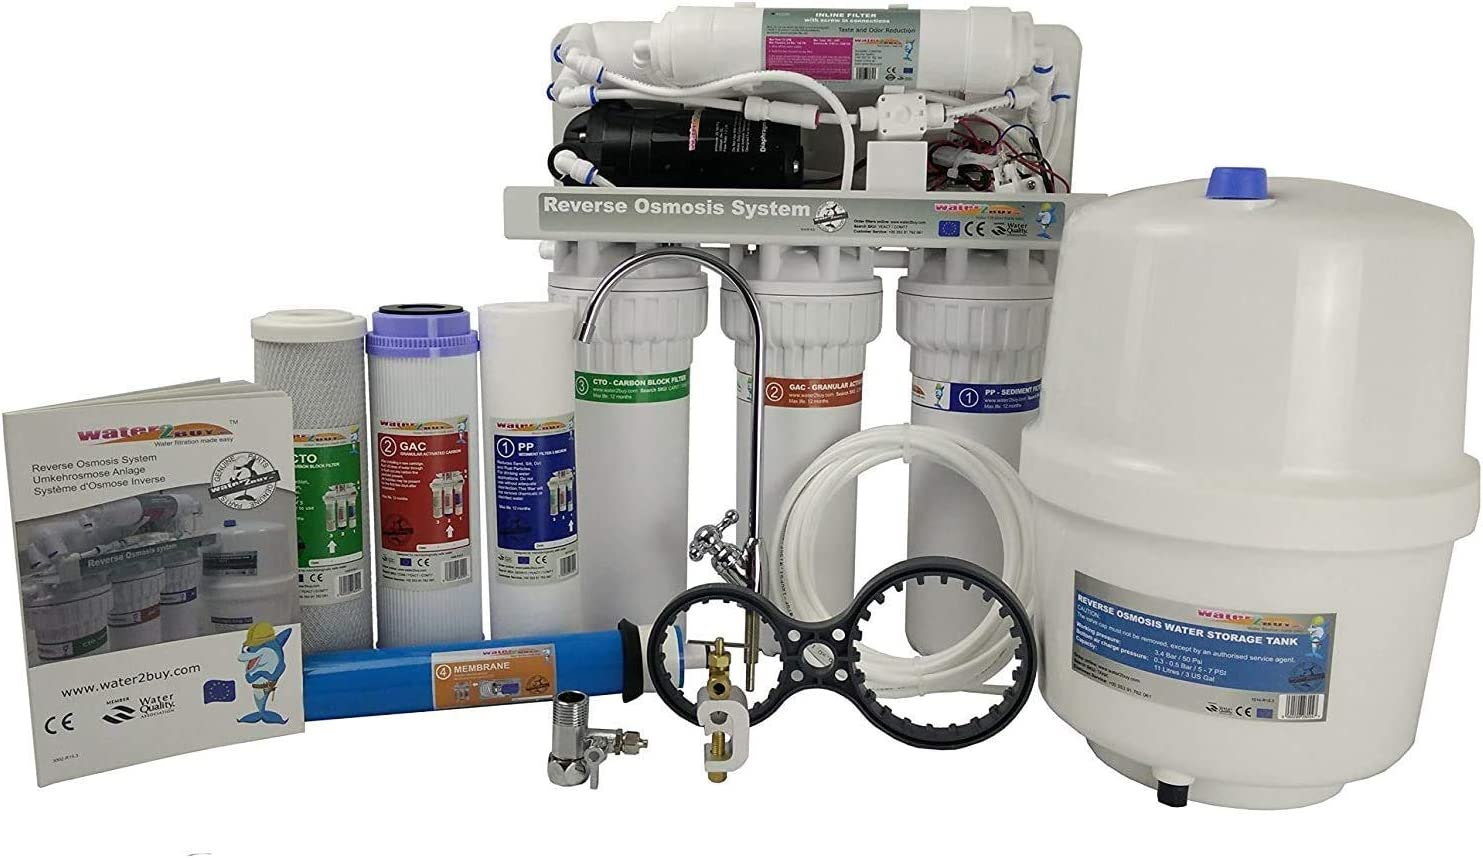 Water2buy RO600 Reverse Osmosis System